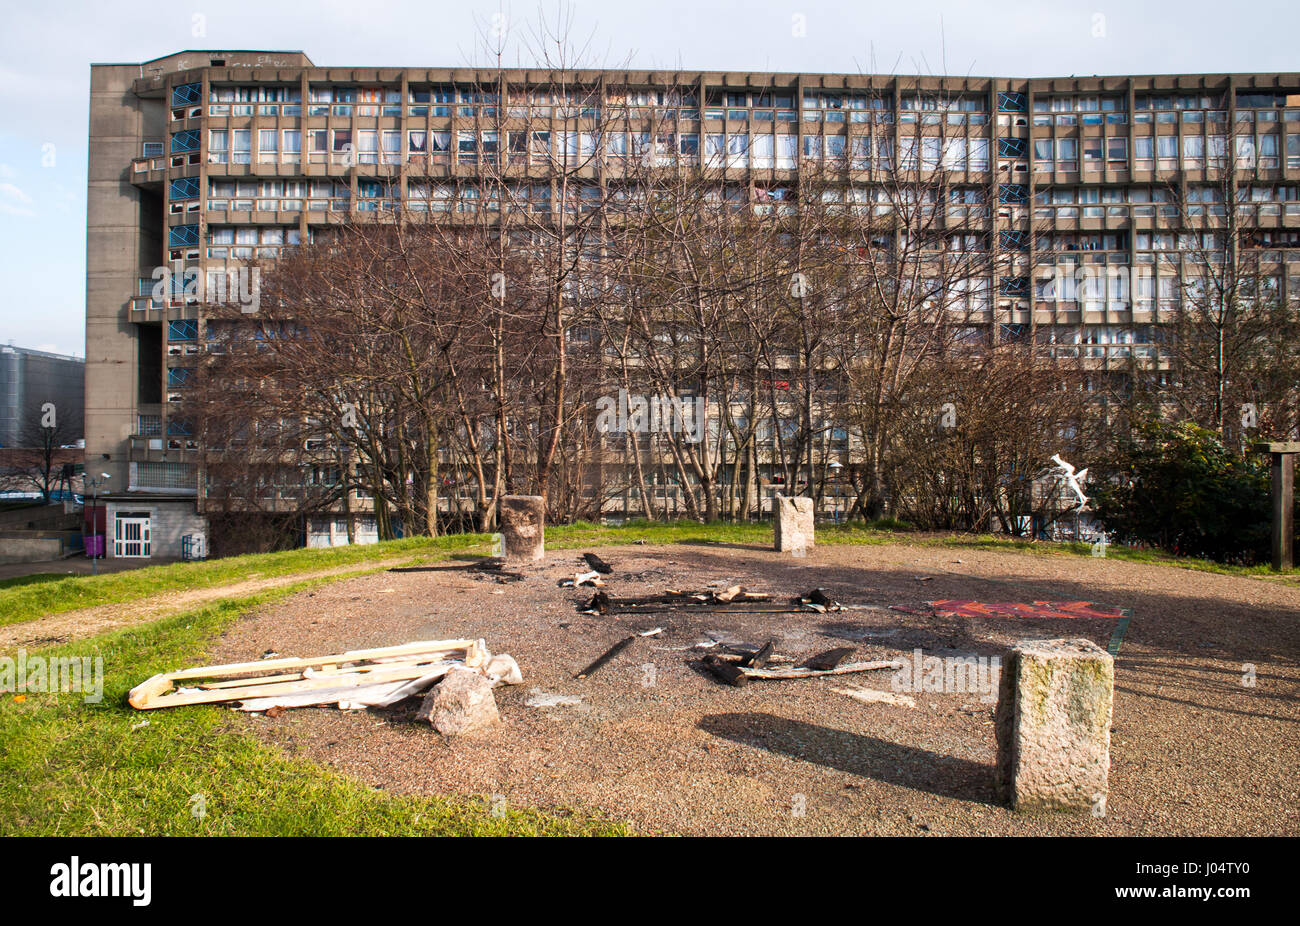 London, England, UK - February 17, 2013: Brutalist council housing blocks in the Robin Hood Gardens council estate, - Stock Image